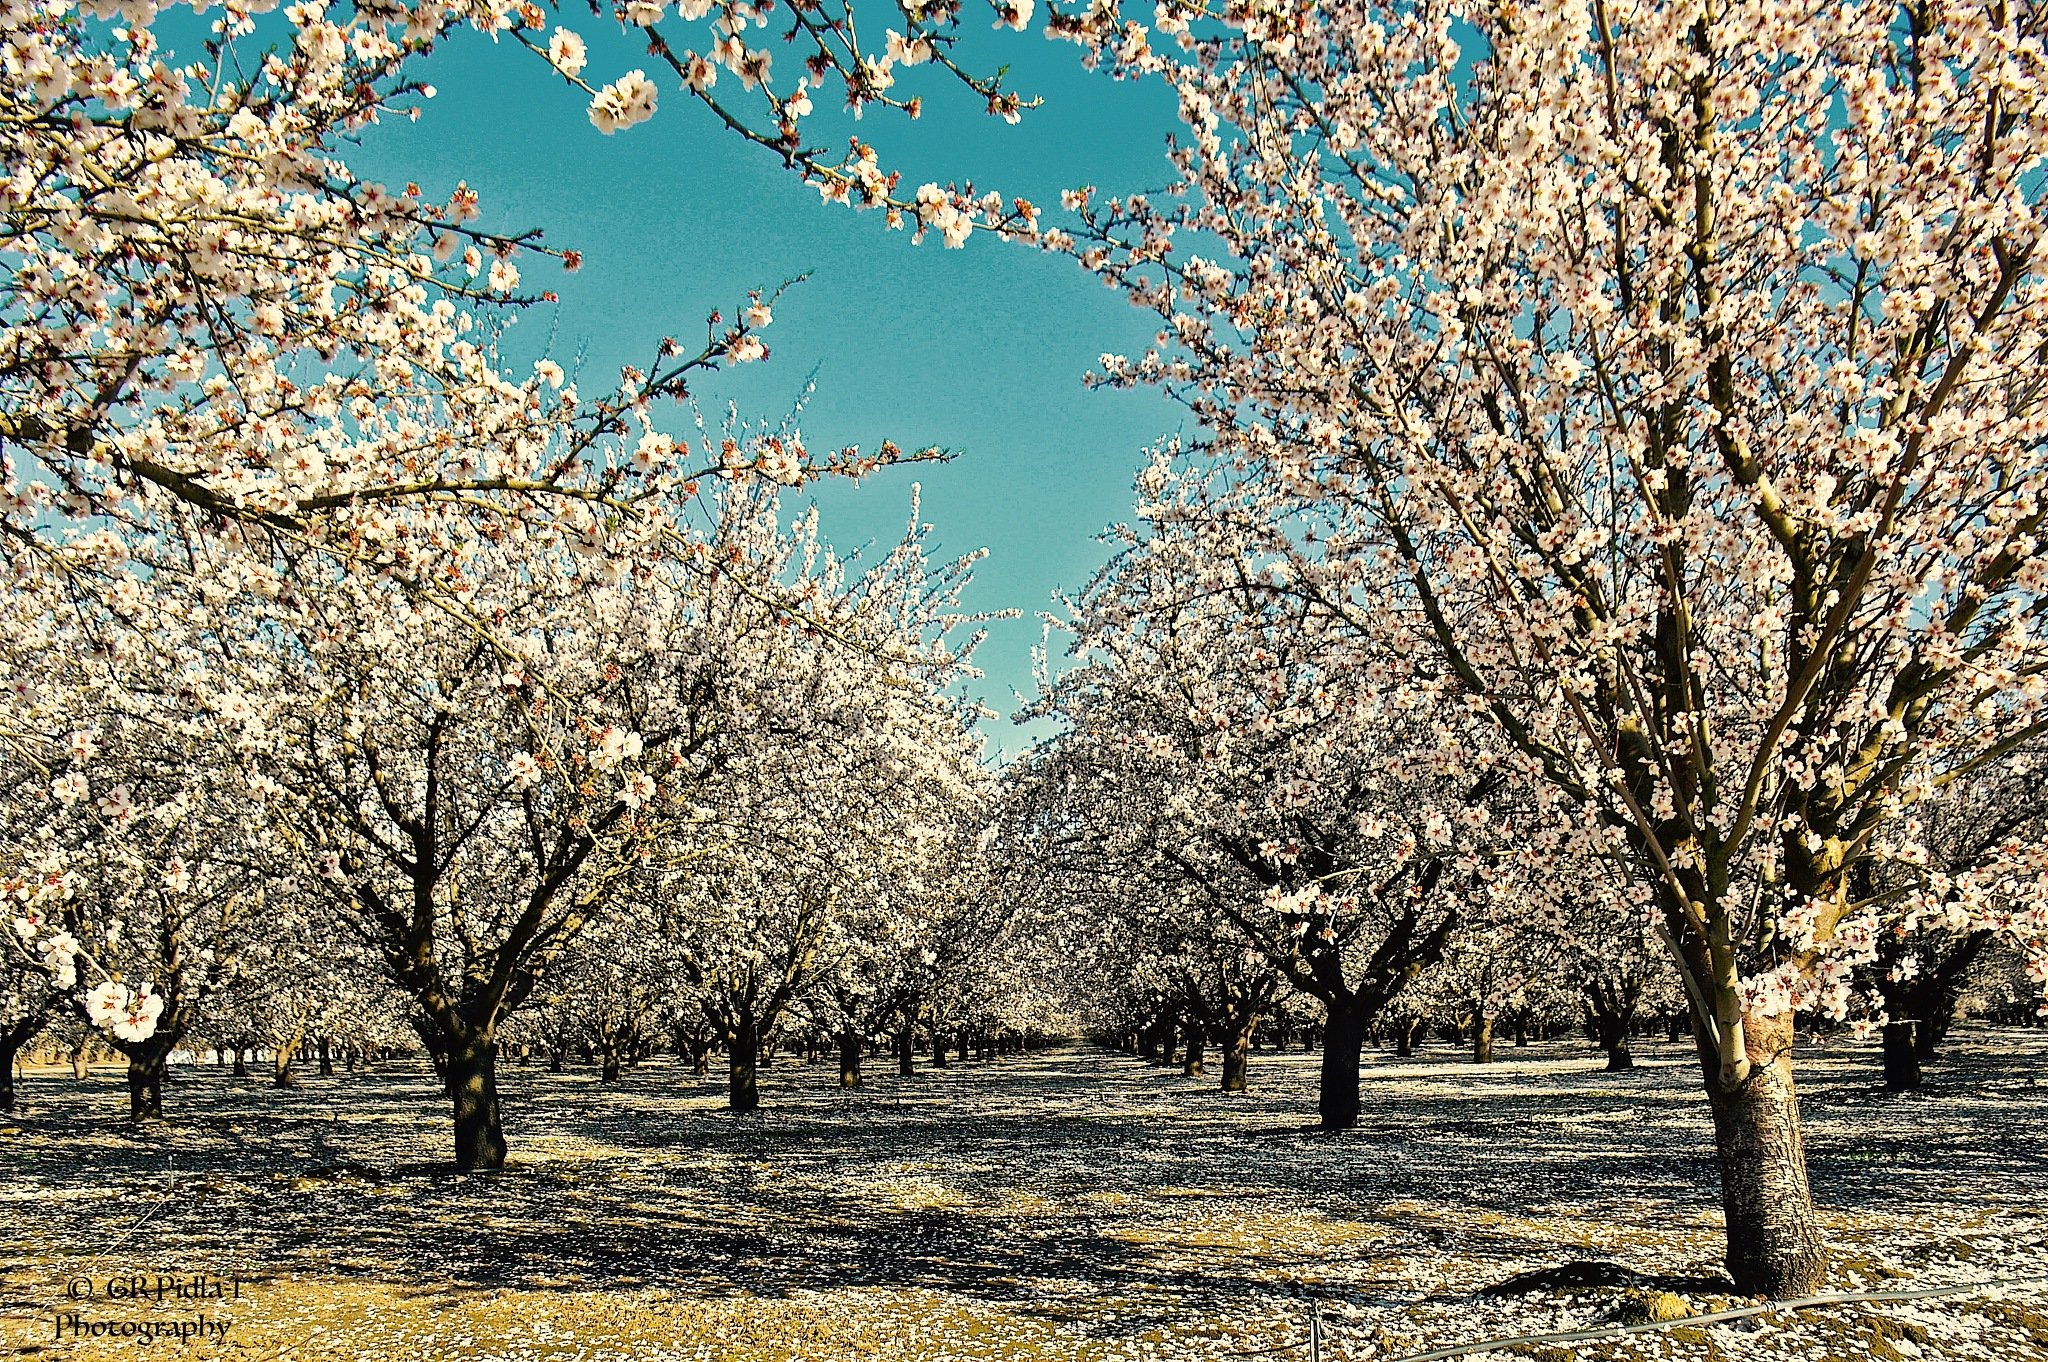 Spring Flowers Fruit Blossom Trees by Gina  Alwaysmile (*_*)